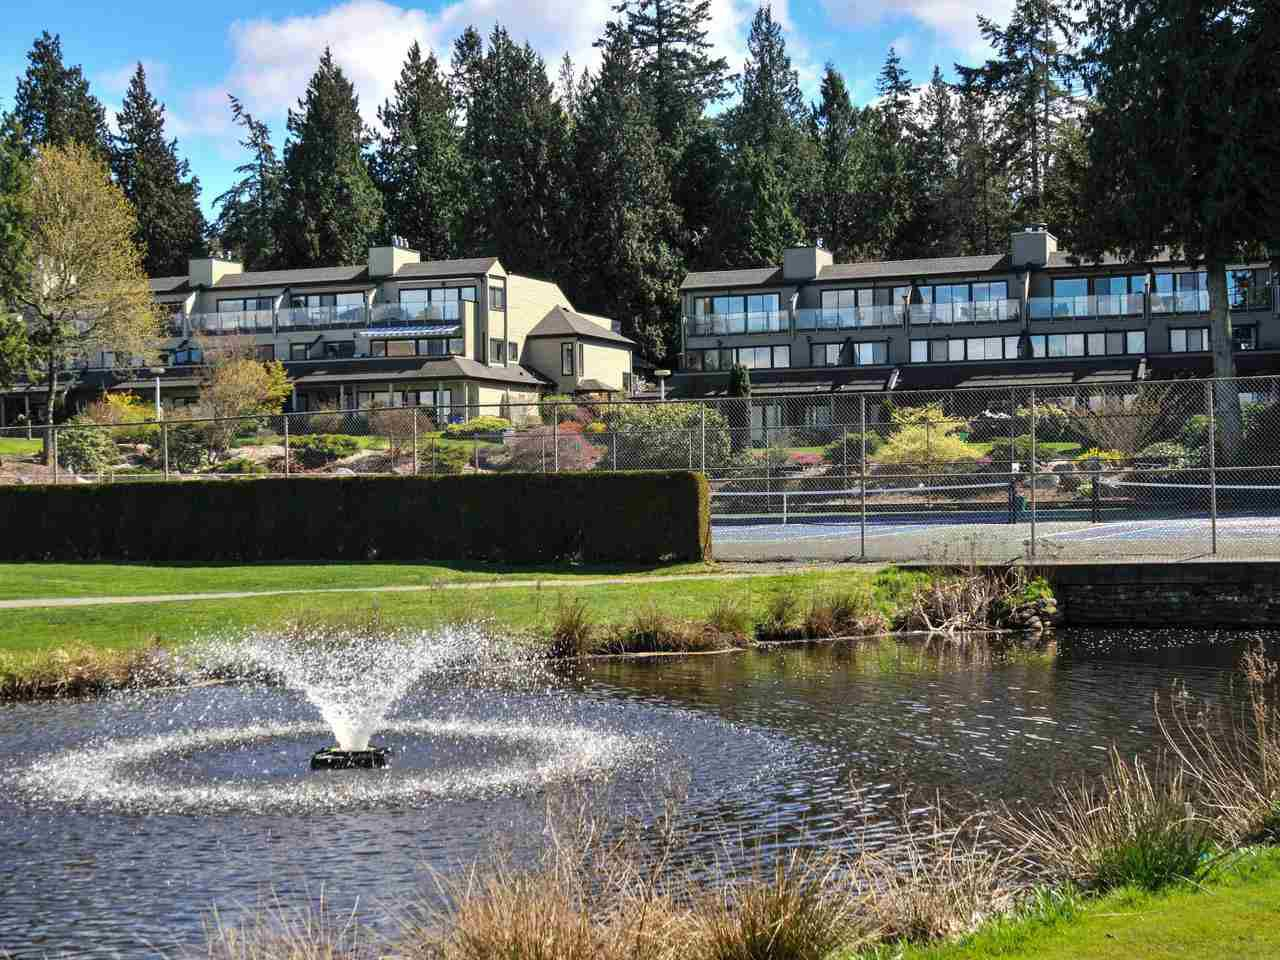 """Main Photo: 11 14025 NICO WYND Place in Surrey: Elgin Chantrell Condo for sale in """"Nico Wynd Estates"""" (South Surrey White Rock)  : MLS®# R2369861"""